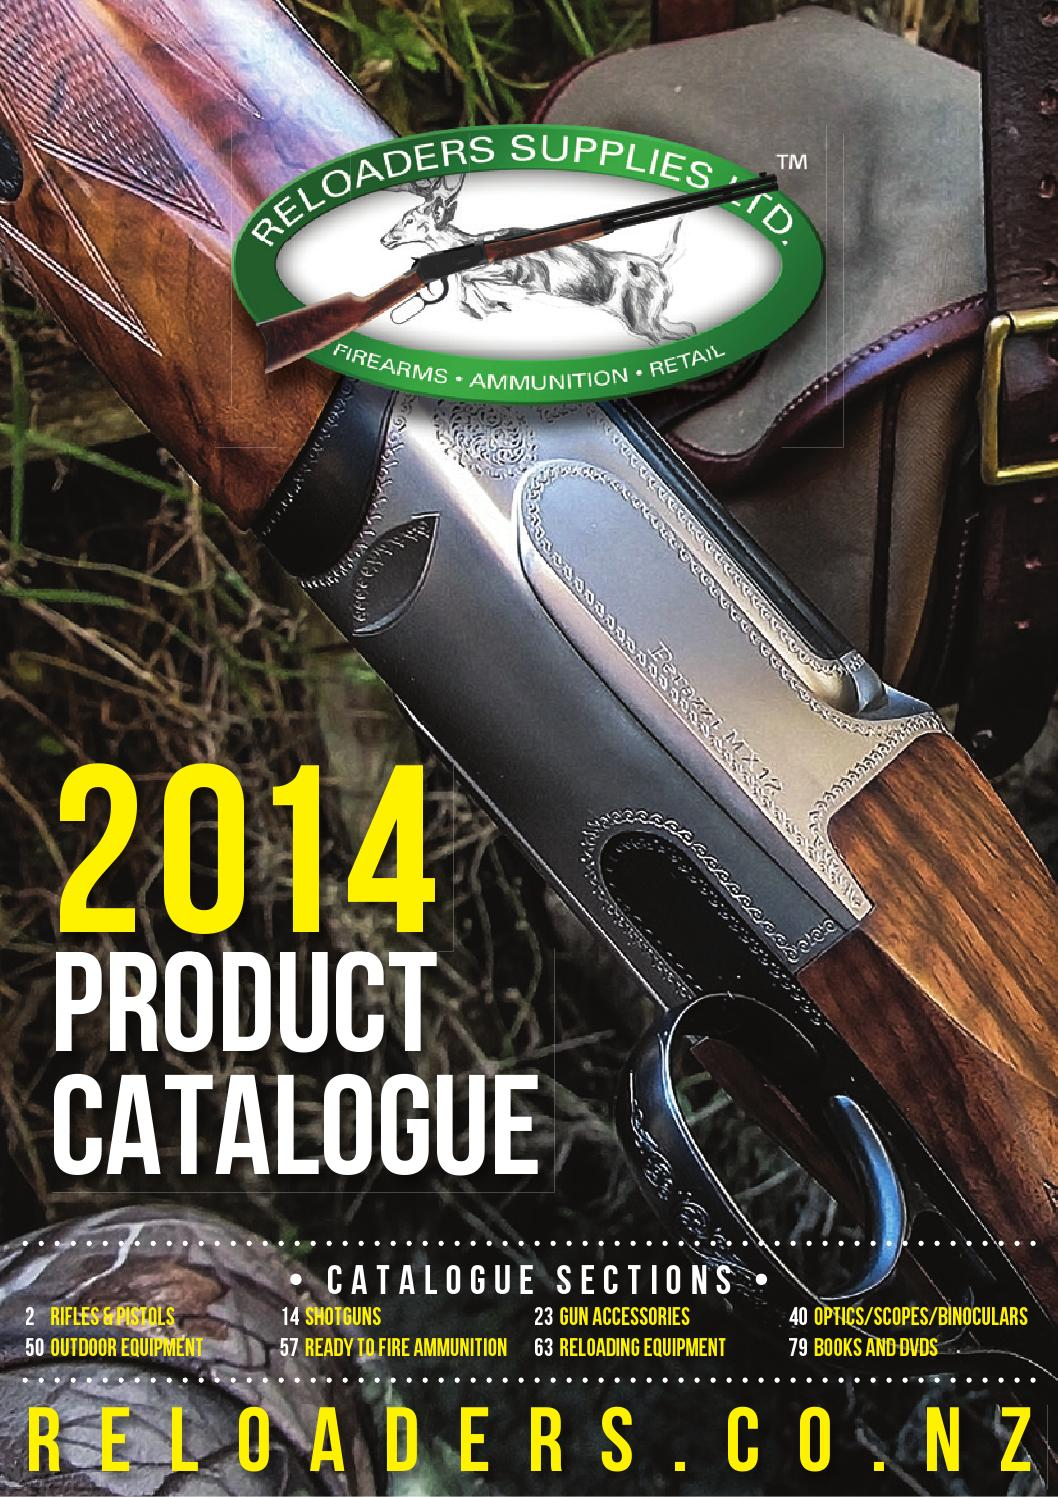 Reloaders 2014 Product Catalogue by Hurst Media Ltd - issuu